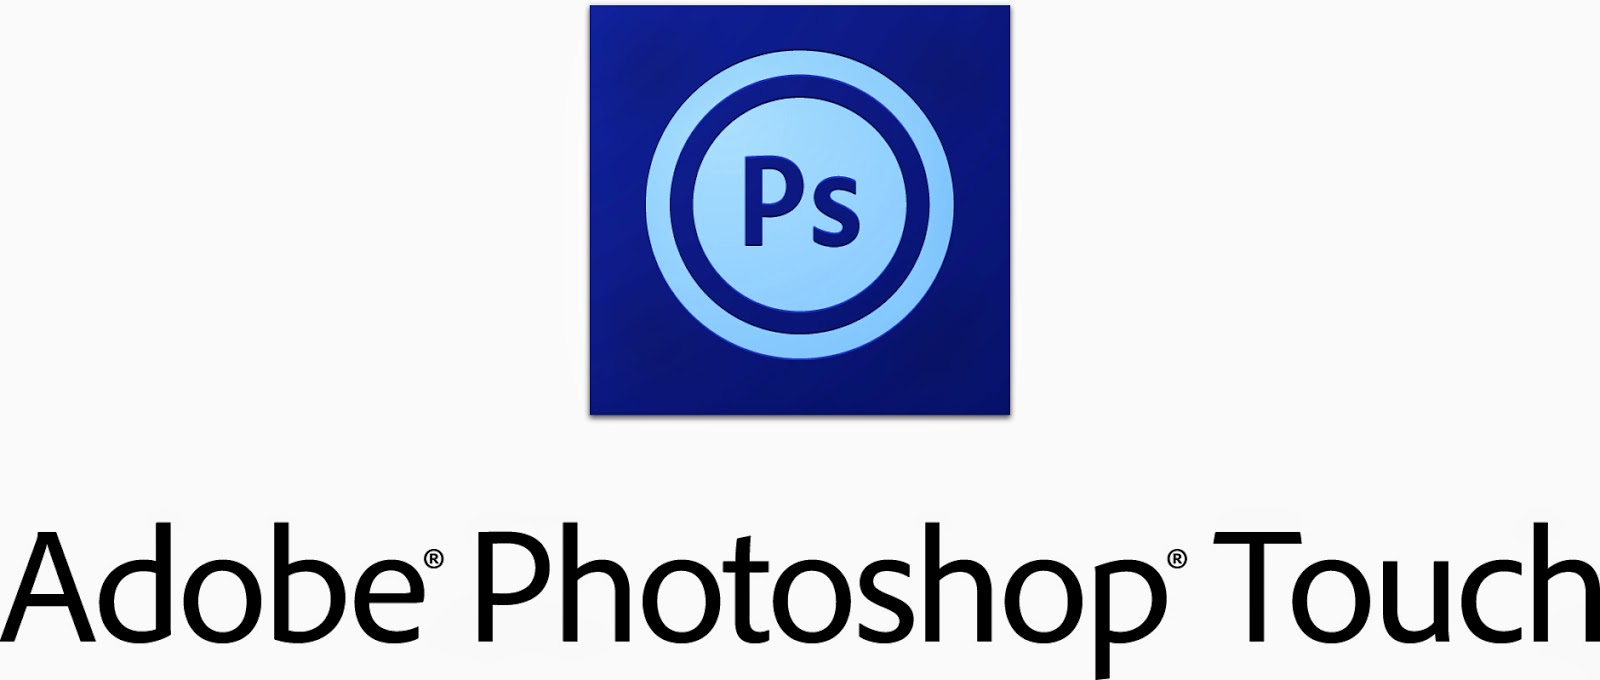 Phone for touch apk photoshop